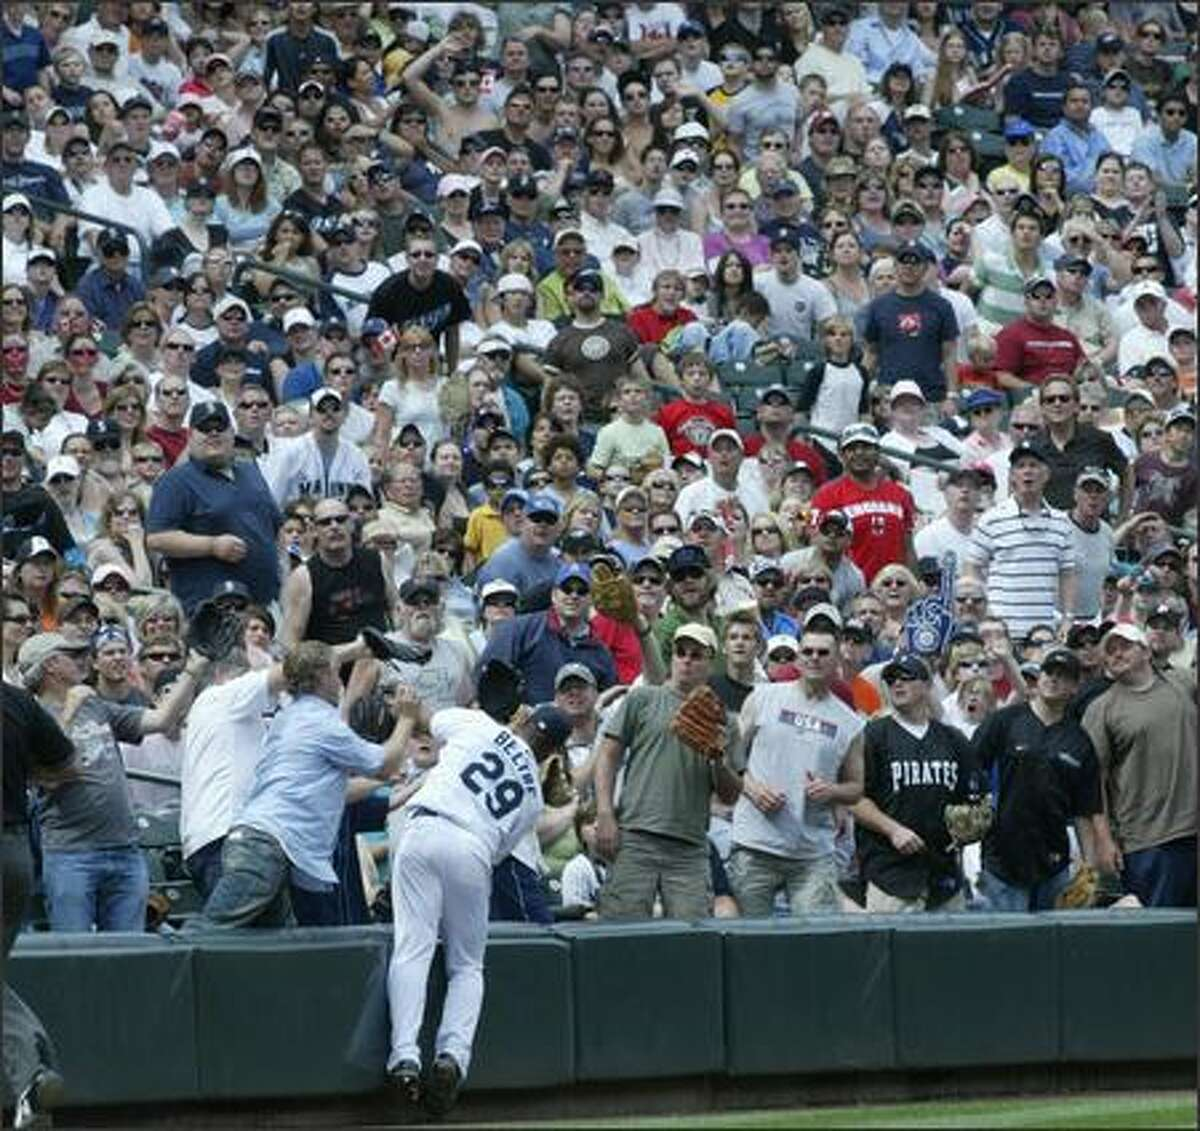 Mariners third baseman Adrian Beltre reaches into the crowd to catch a foul ball hit by Toronto's Matt Stairs for an out late in the game.